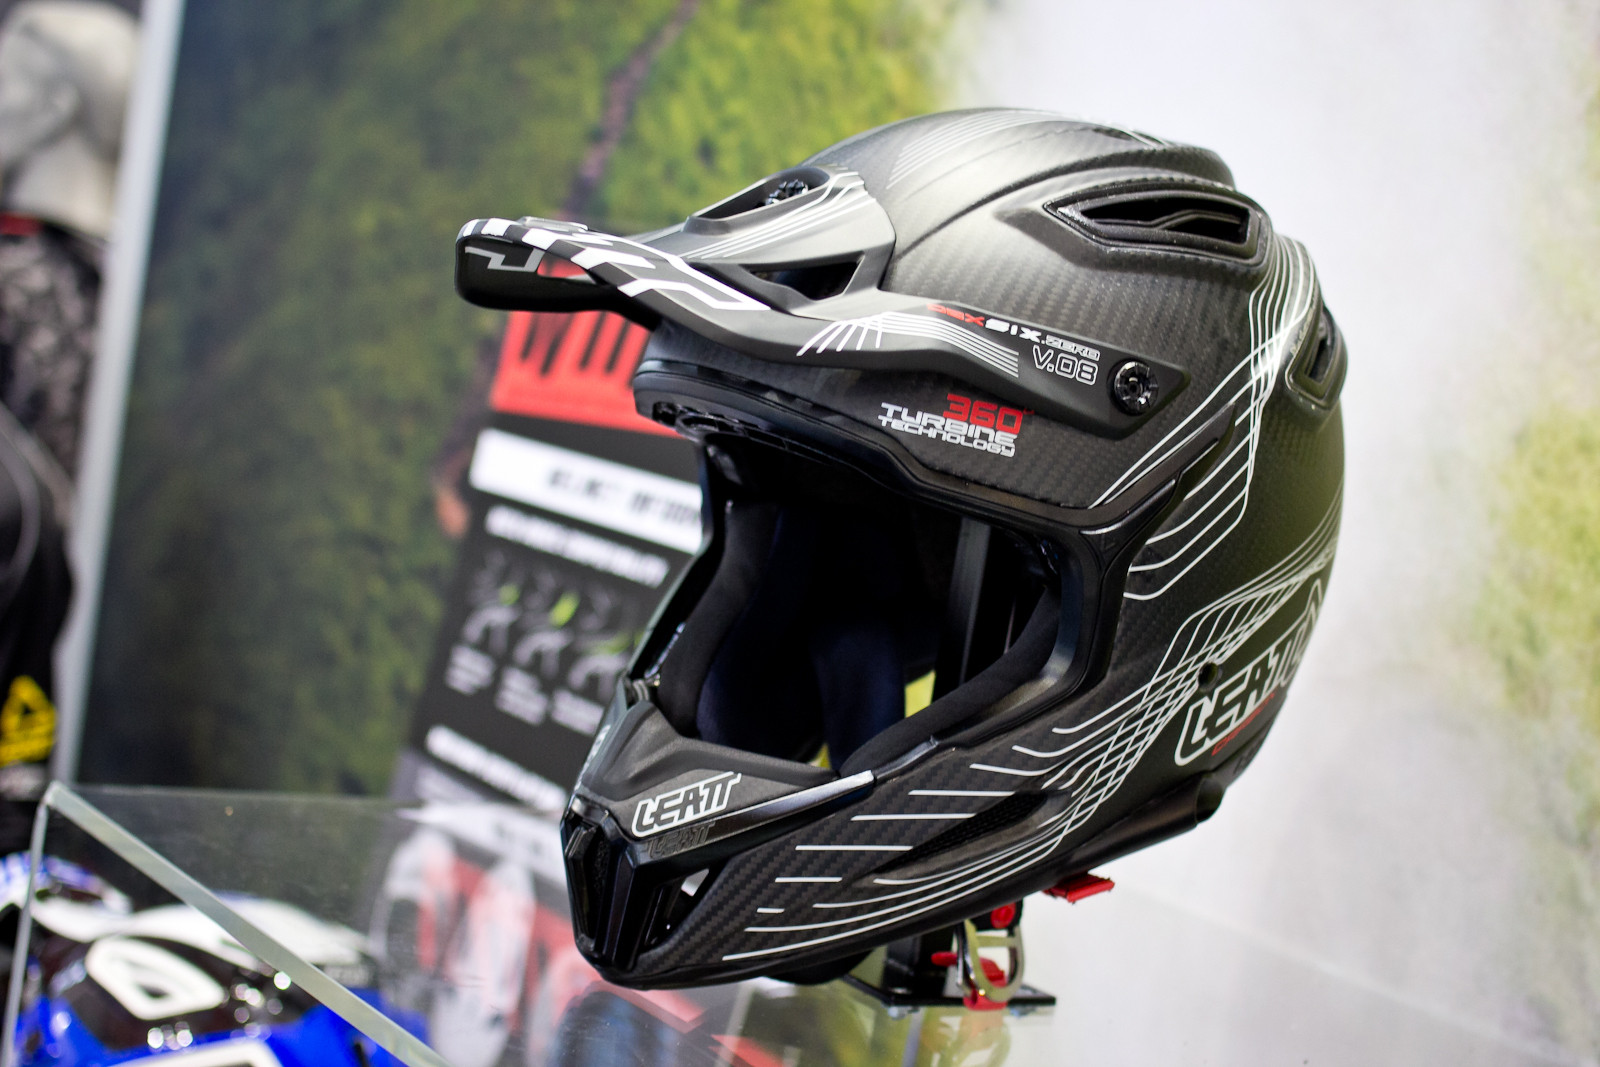 Leatt DBX 6.5 V10 Carbon Helmet - 2015 Mountain Bike Apparel & Protection at Eurobike 2014 - Mountain Biking Pictures - Vital MTB